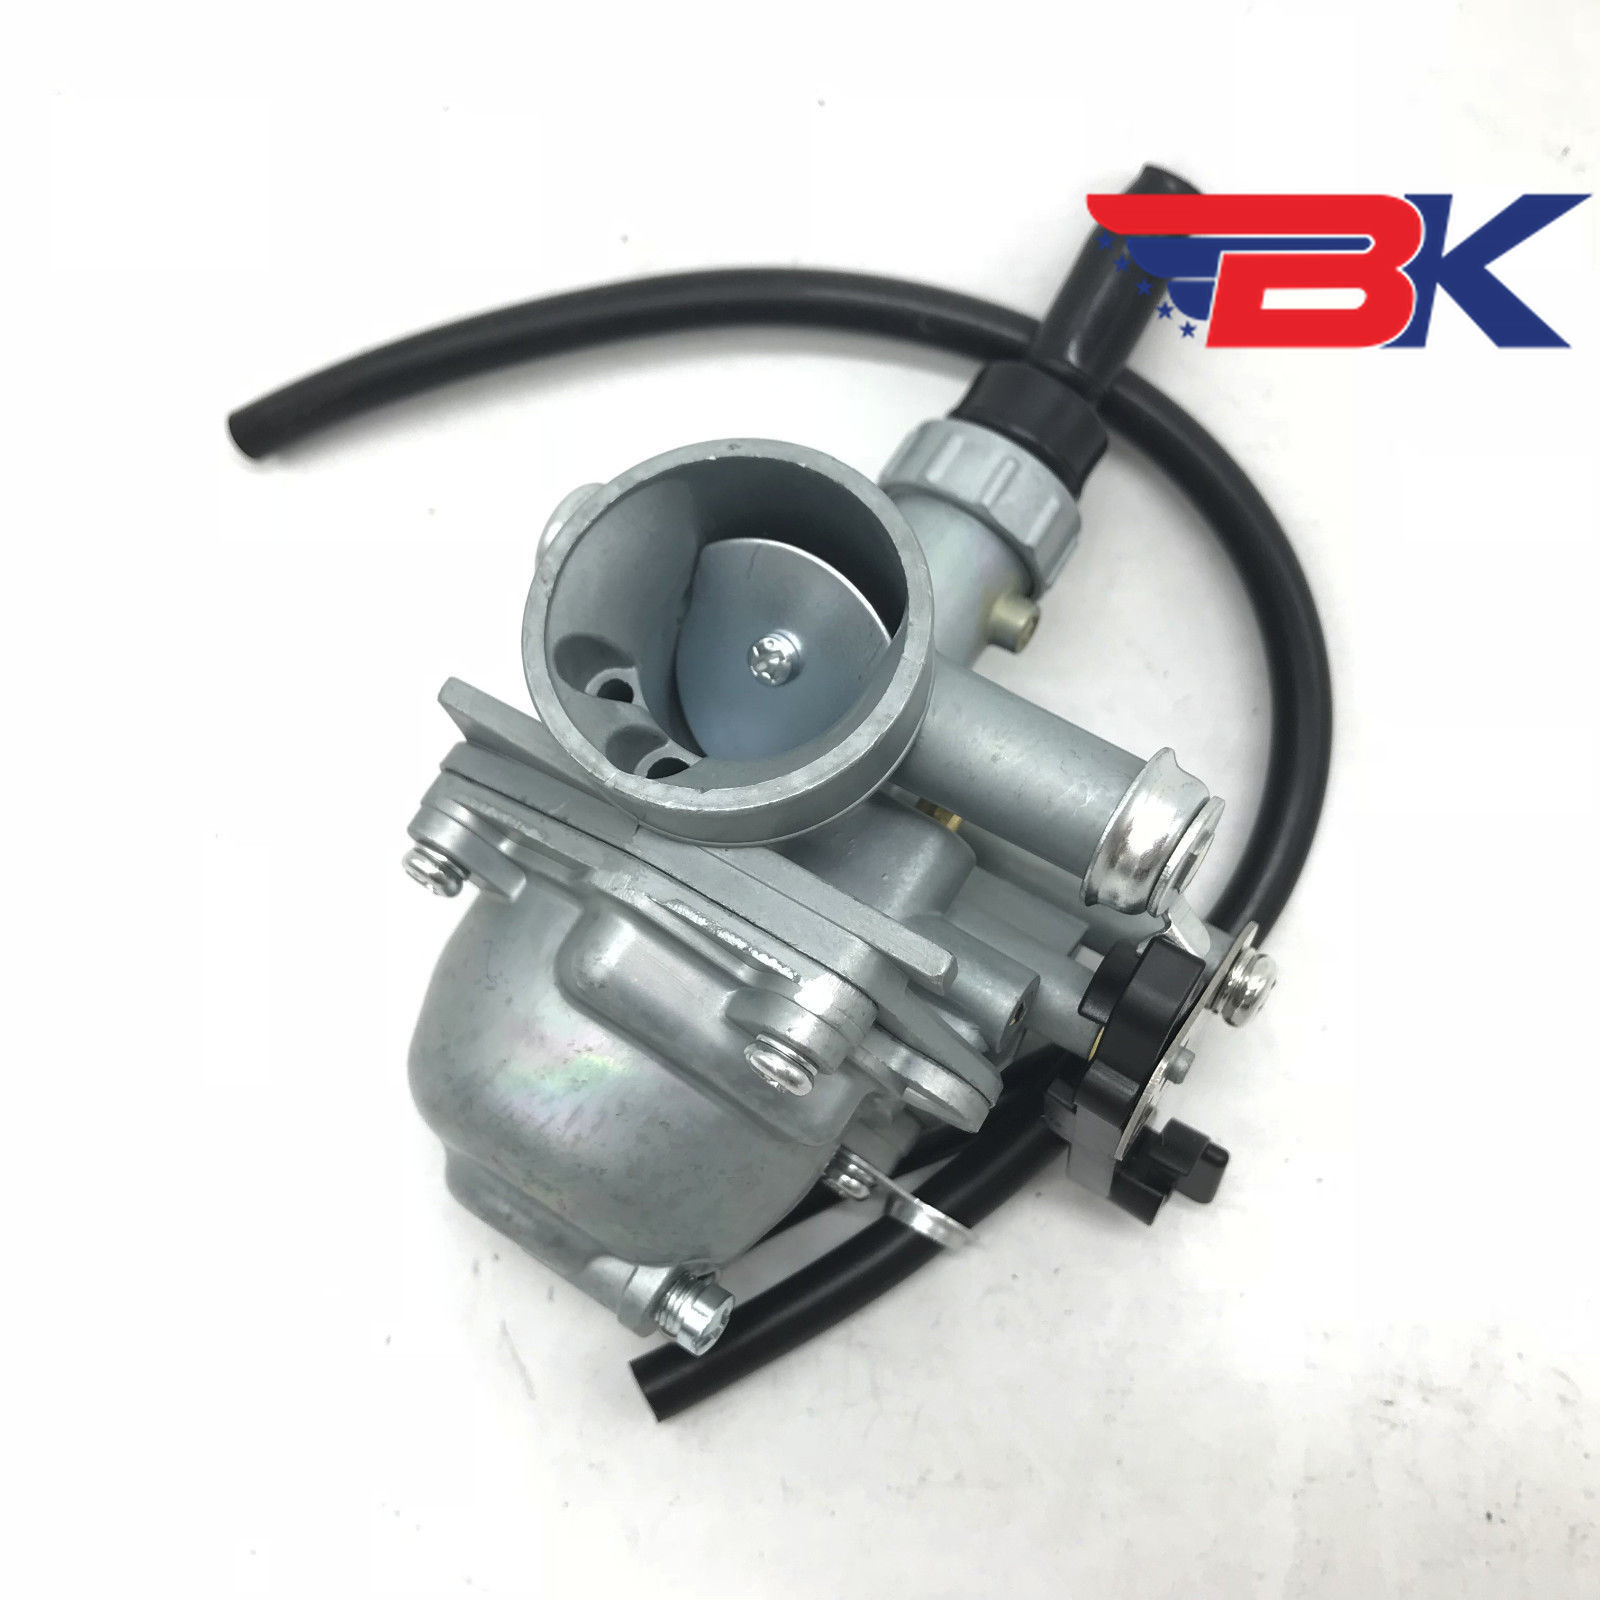 Reliable Vm16 Mikuni Carby 50cc 70cc 110 125cc Pit Dirt Bike Atv Scooter 19mm Z50 Dax Carb Carburetor Atv,rv,boat & Other Vehicle Atv Parts & Accessories